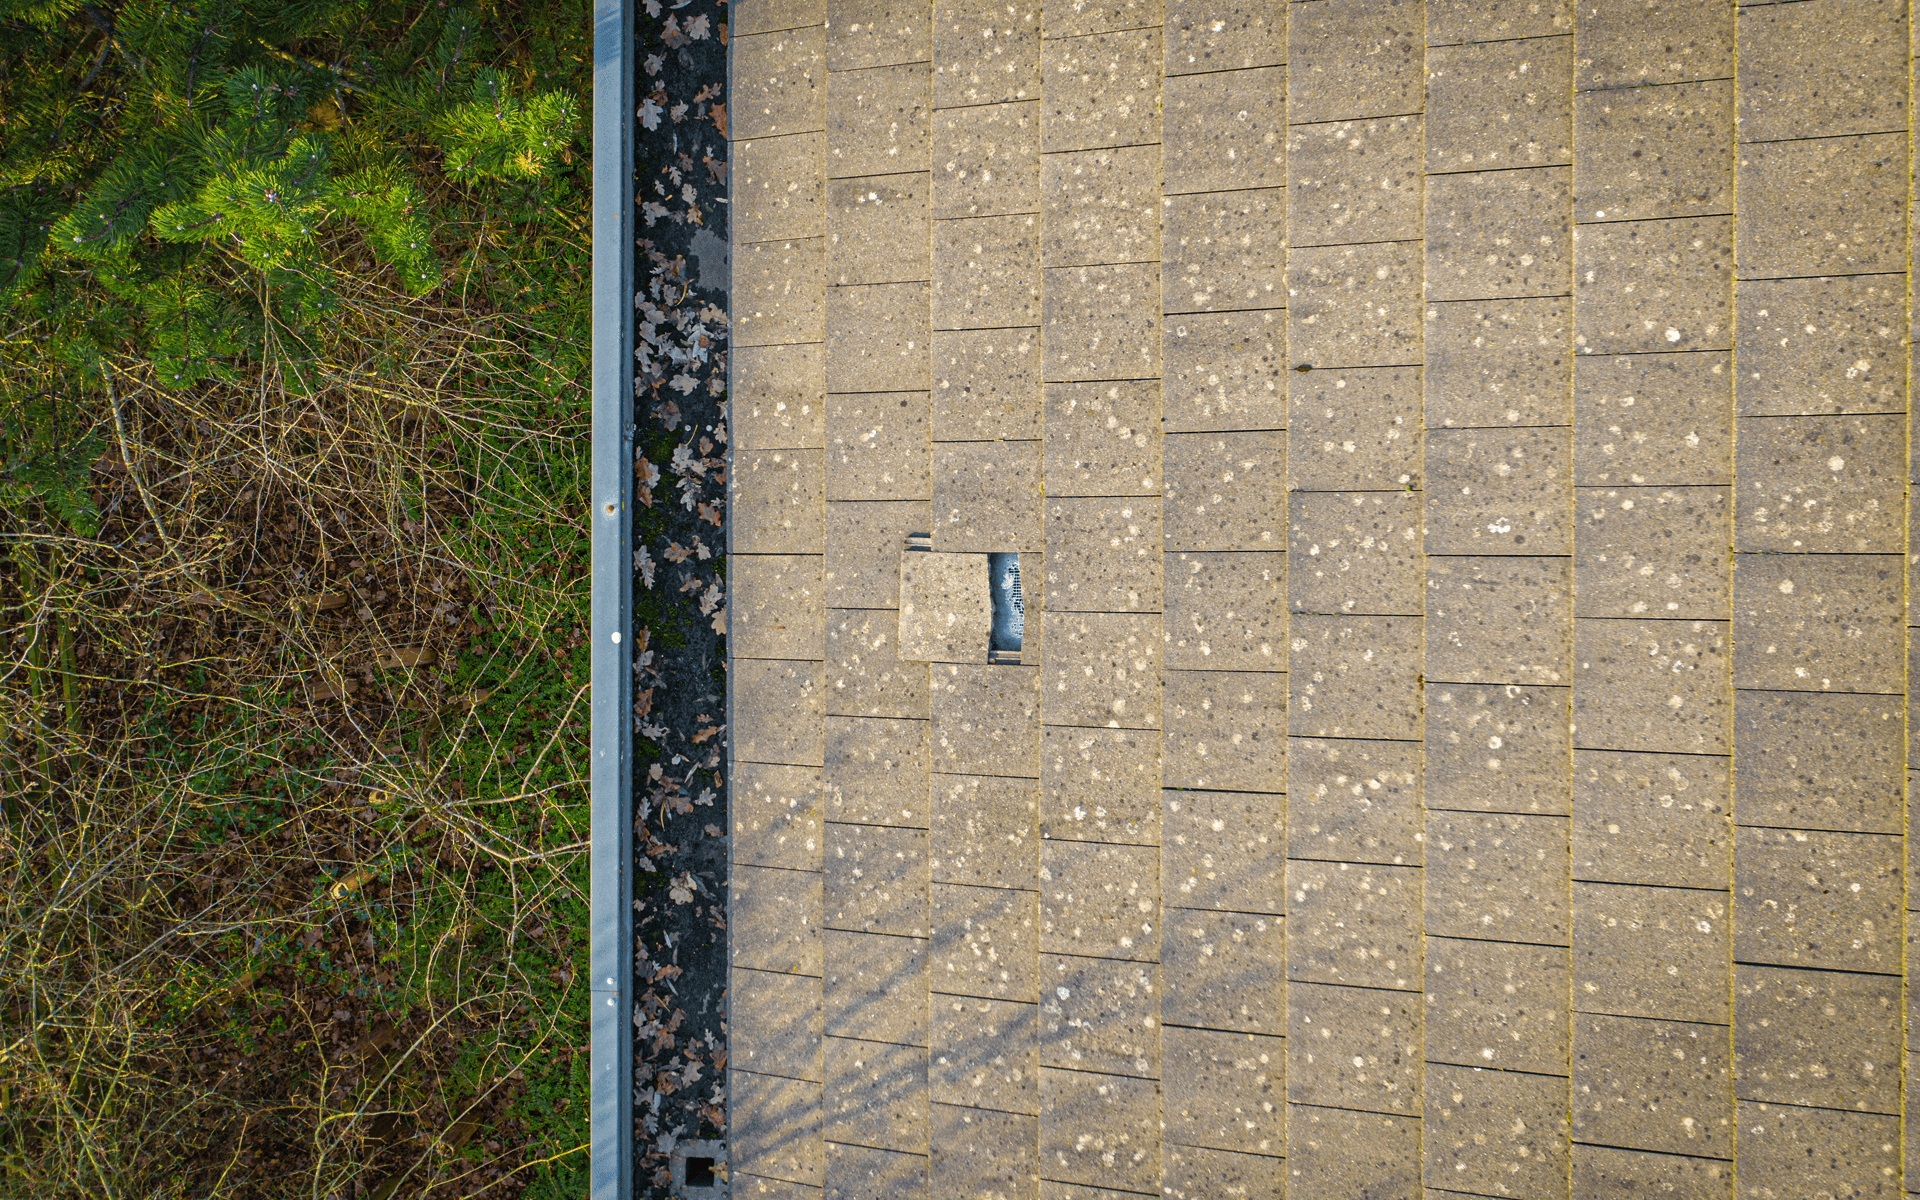 """Mavic 2 Pro"" aerial drone photo for a roof survey of a commercial building at Emersons Green, Bristol"